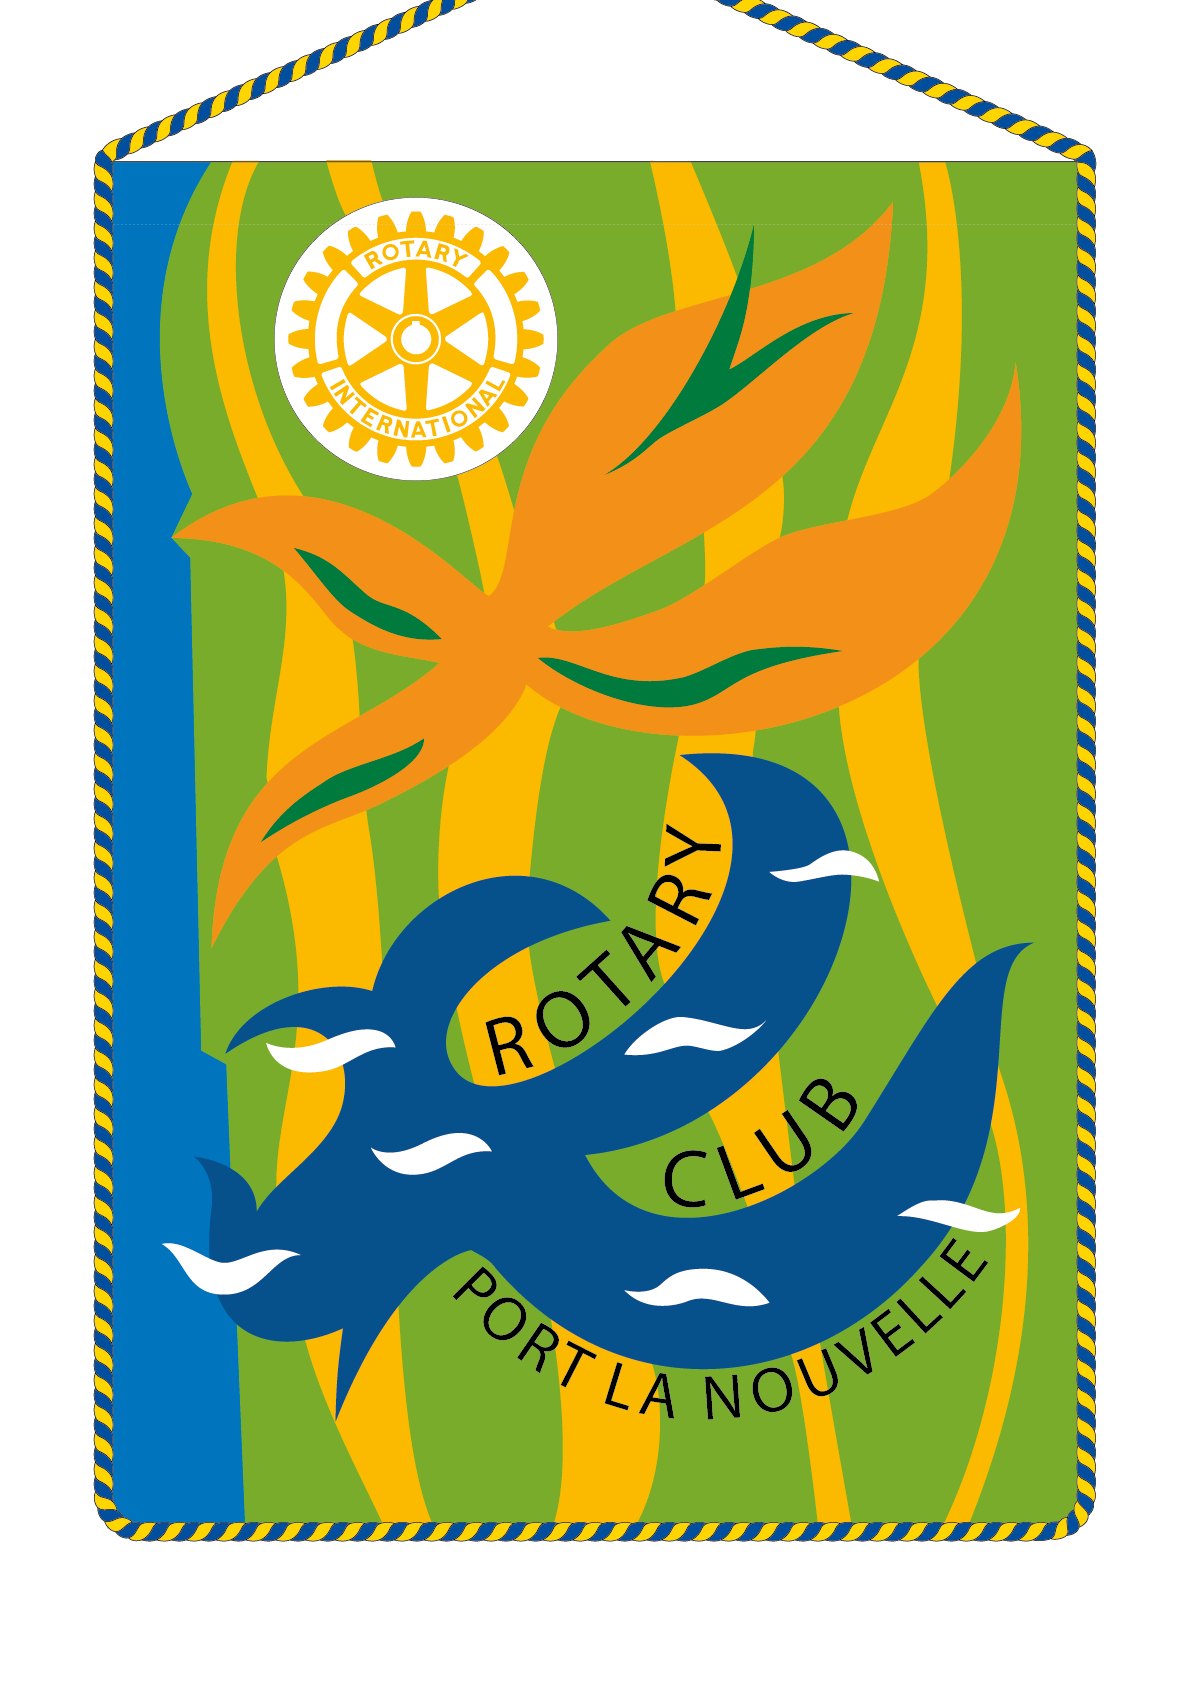 FANION ROTARY CLUB PORT LA NOUVELLE